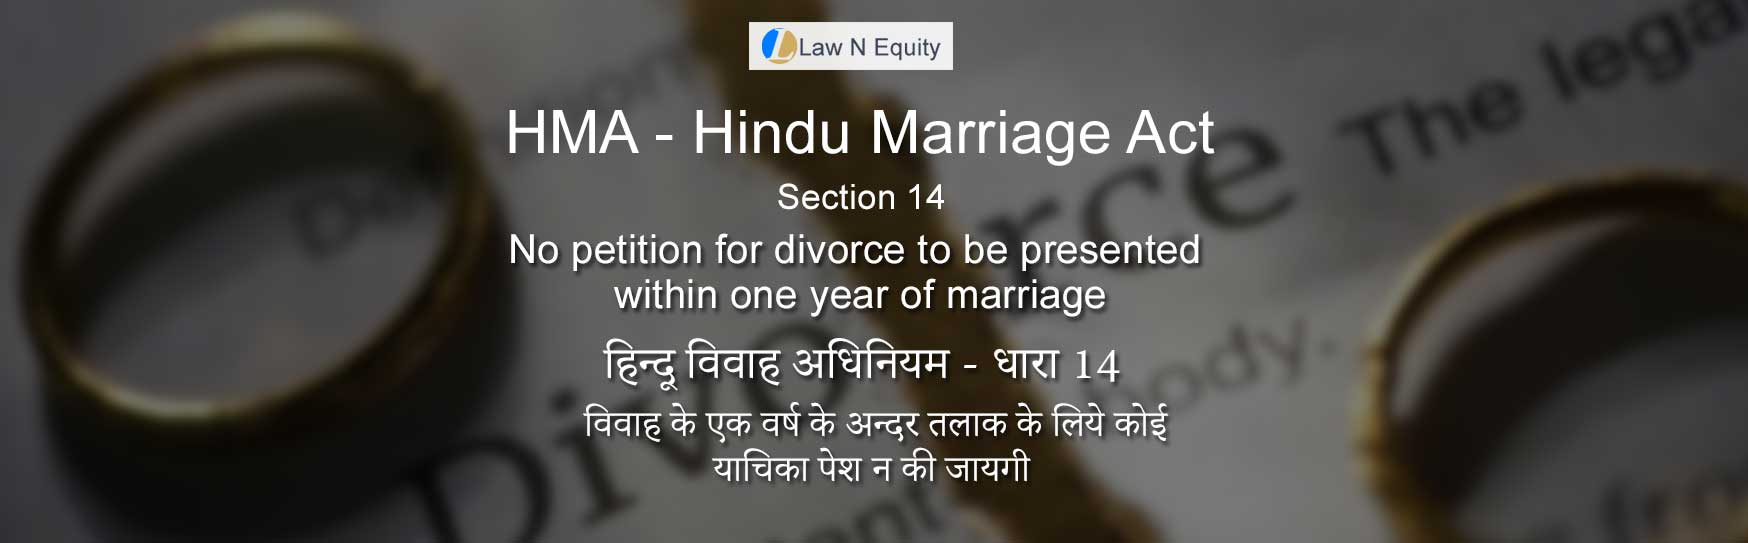 Hindu Marriage Act(HMA) Section 14